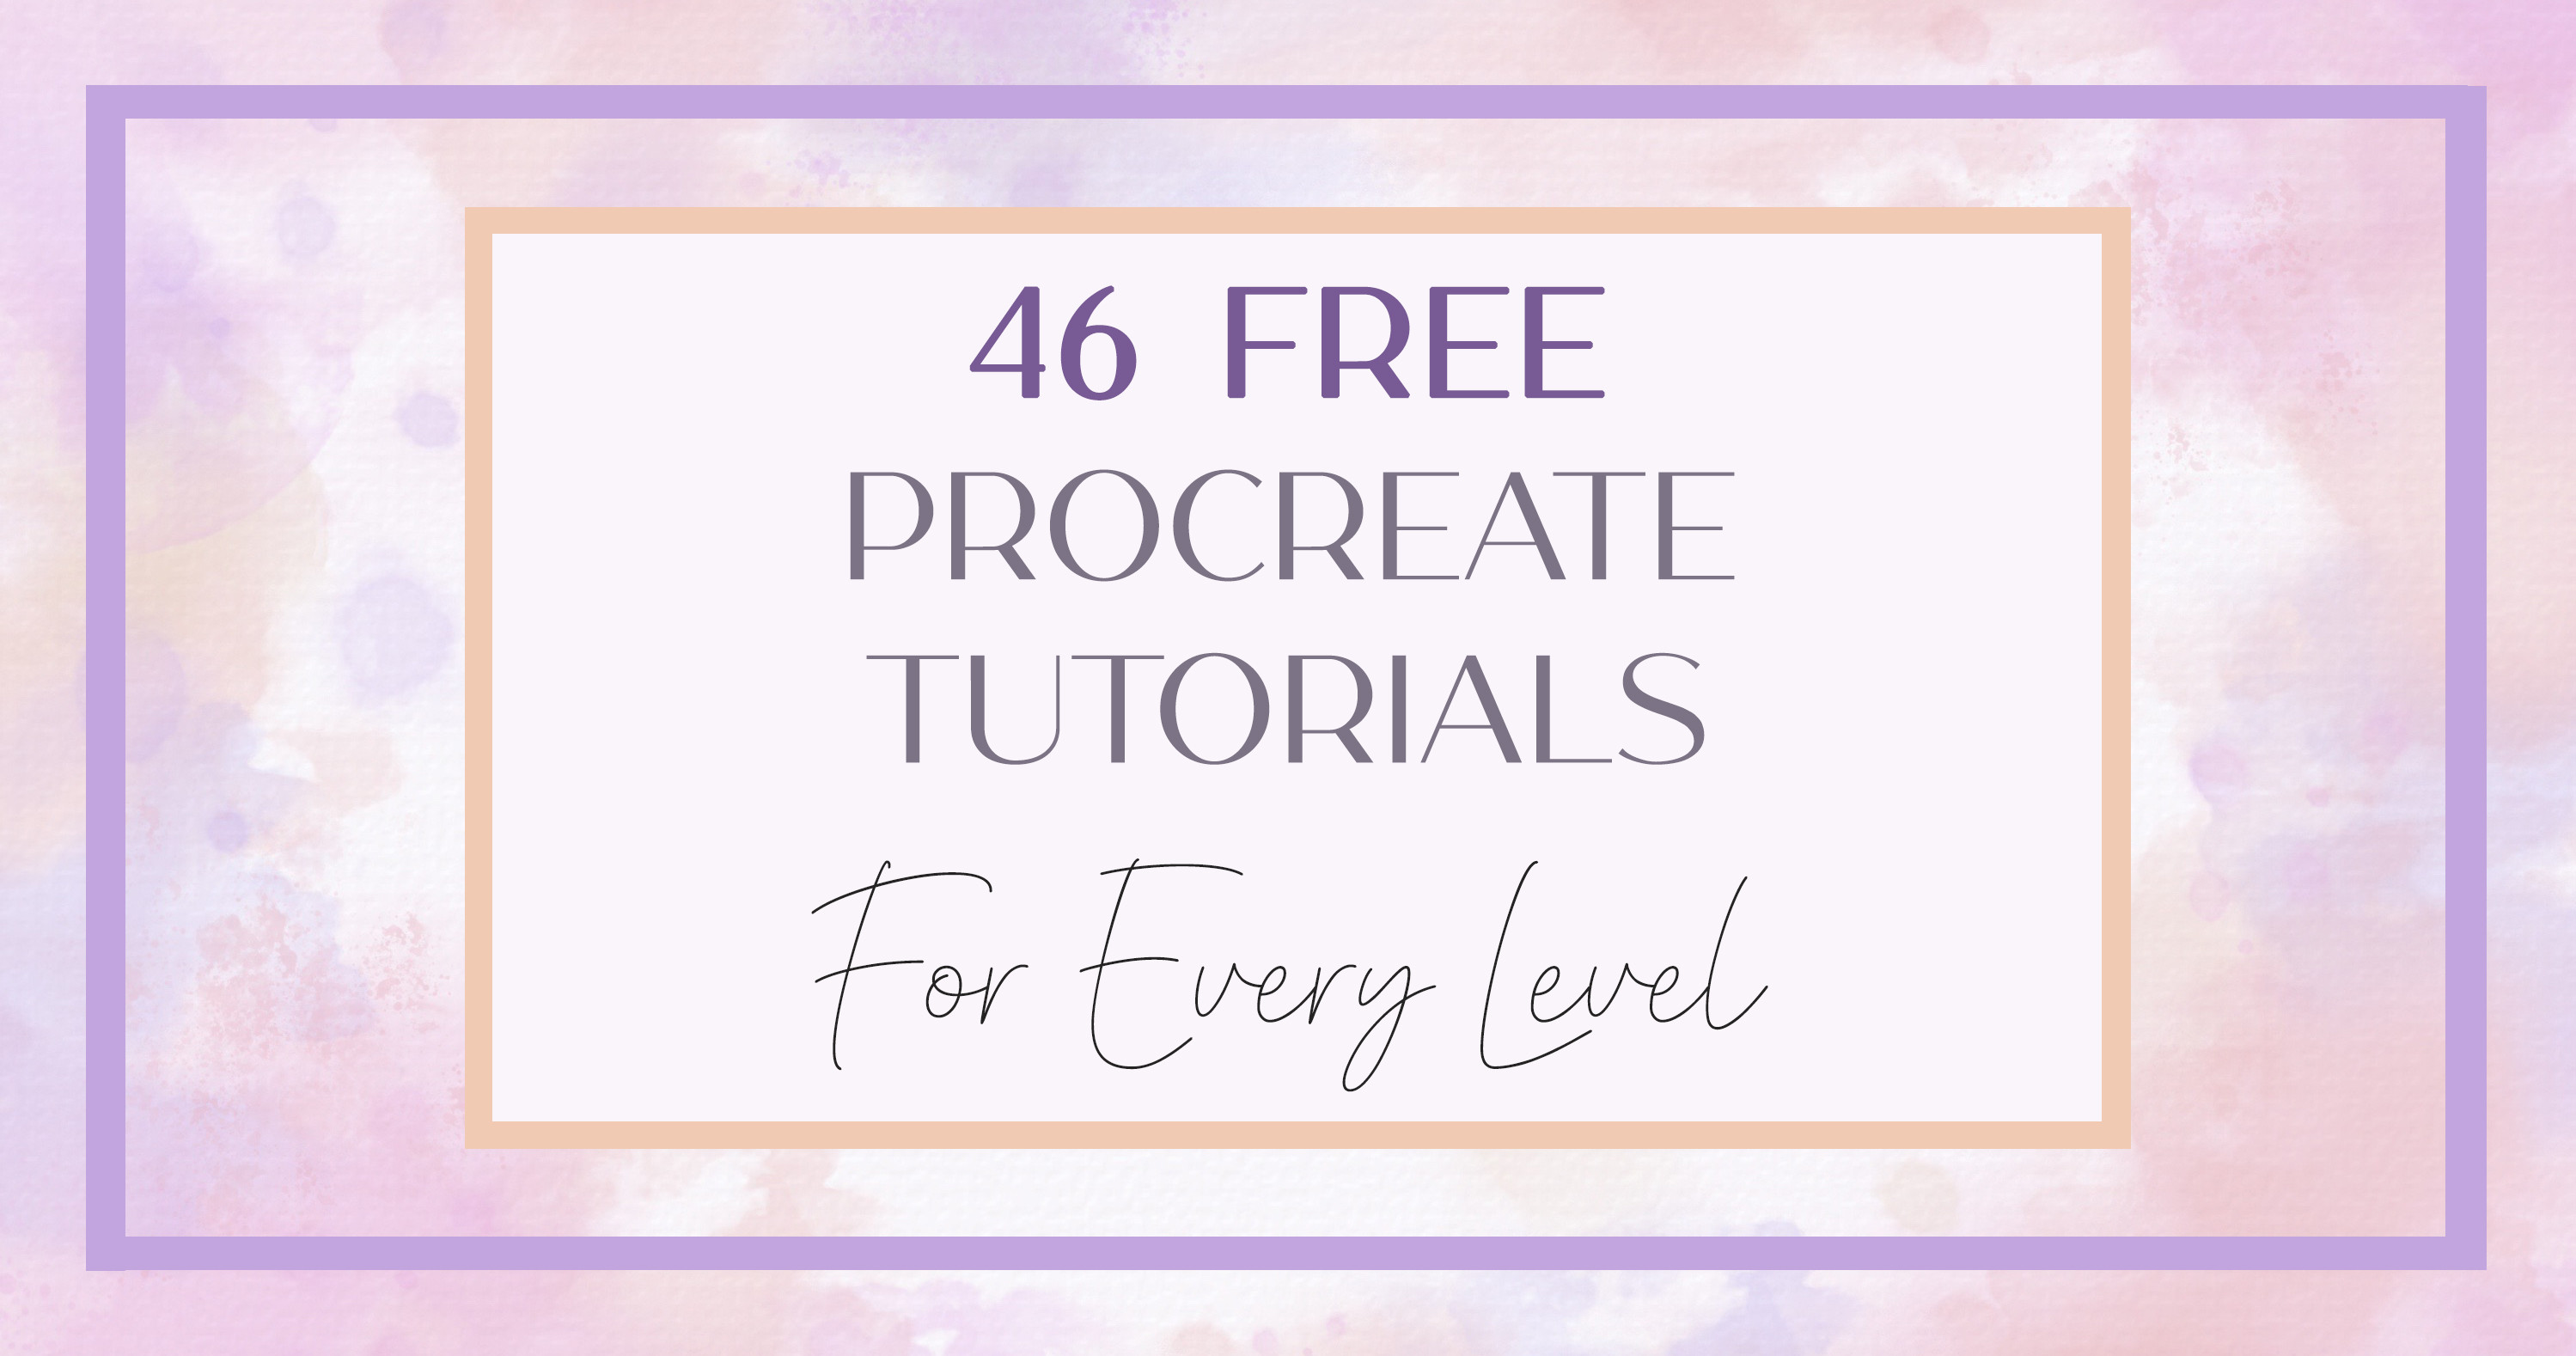 35+ Free Procreate Tutorials – #1 Guide for Beginners and Advanced Users